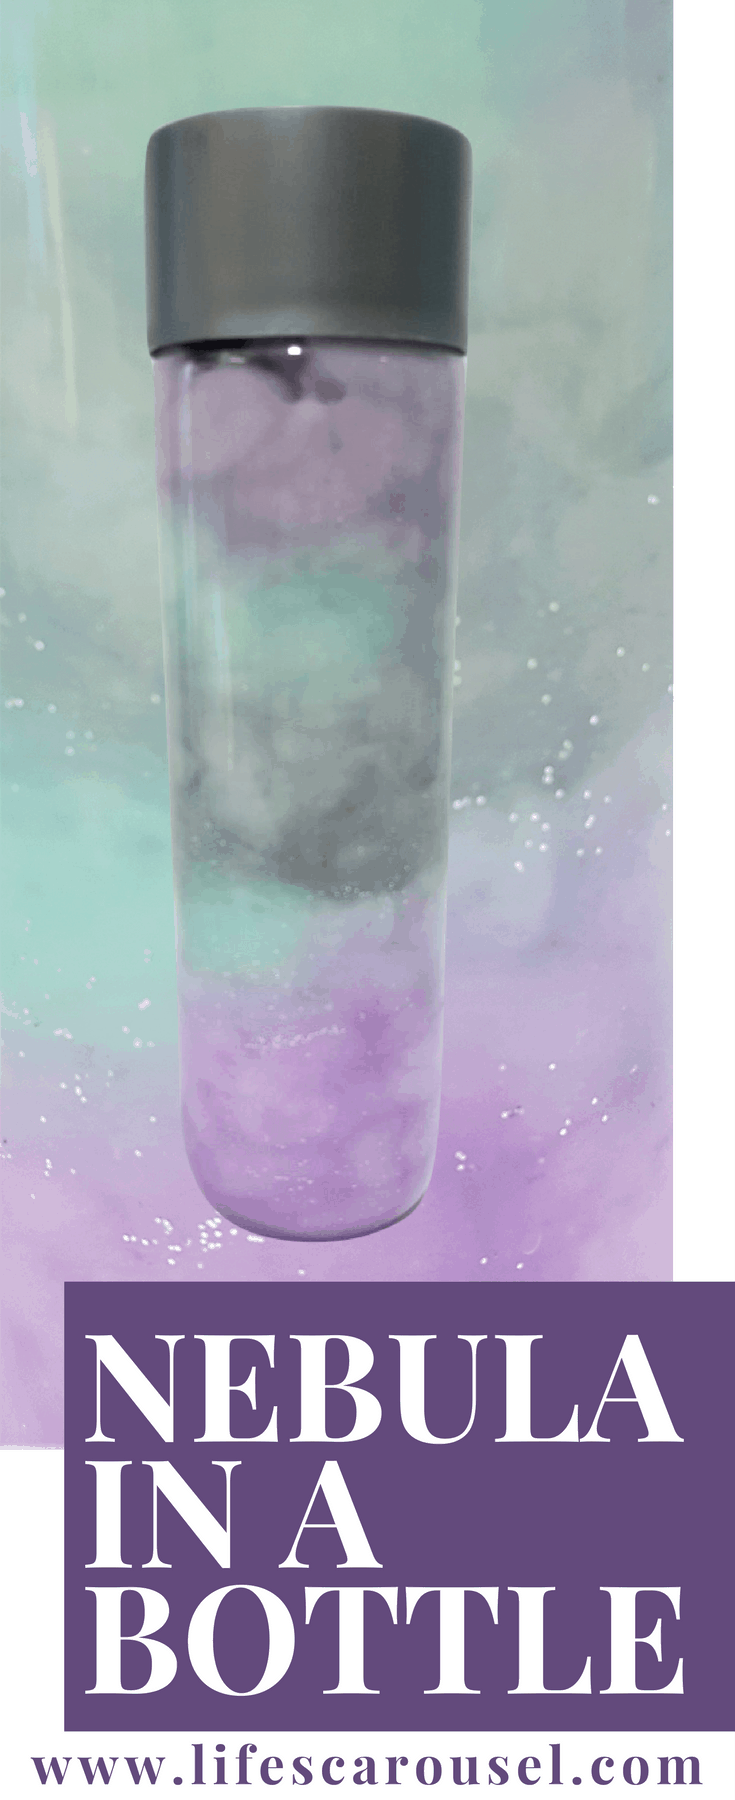 Nebula in a Bottle | DIY Nebula in a Bottle - make your own mini galaxy in a bottle. Quick & easy kids project. Just uses - cotton wool, paint, glitter and water!